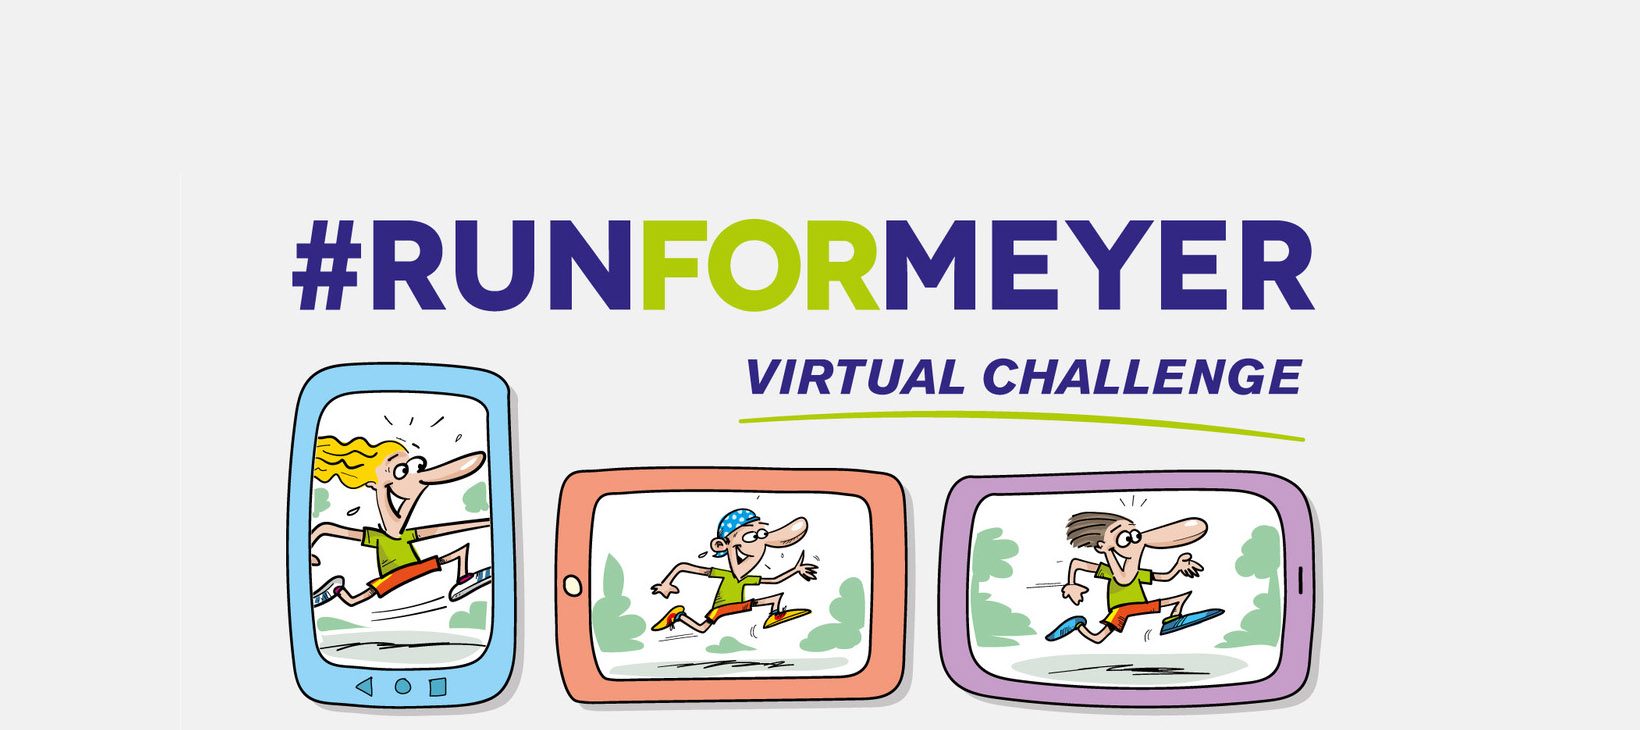 #Runformeyer Virtual Challenge